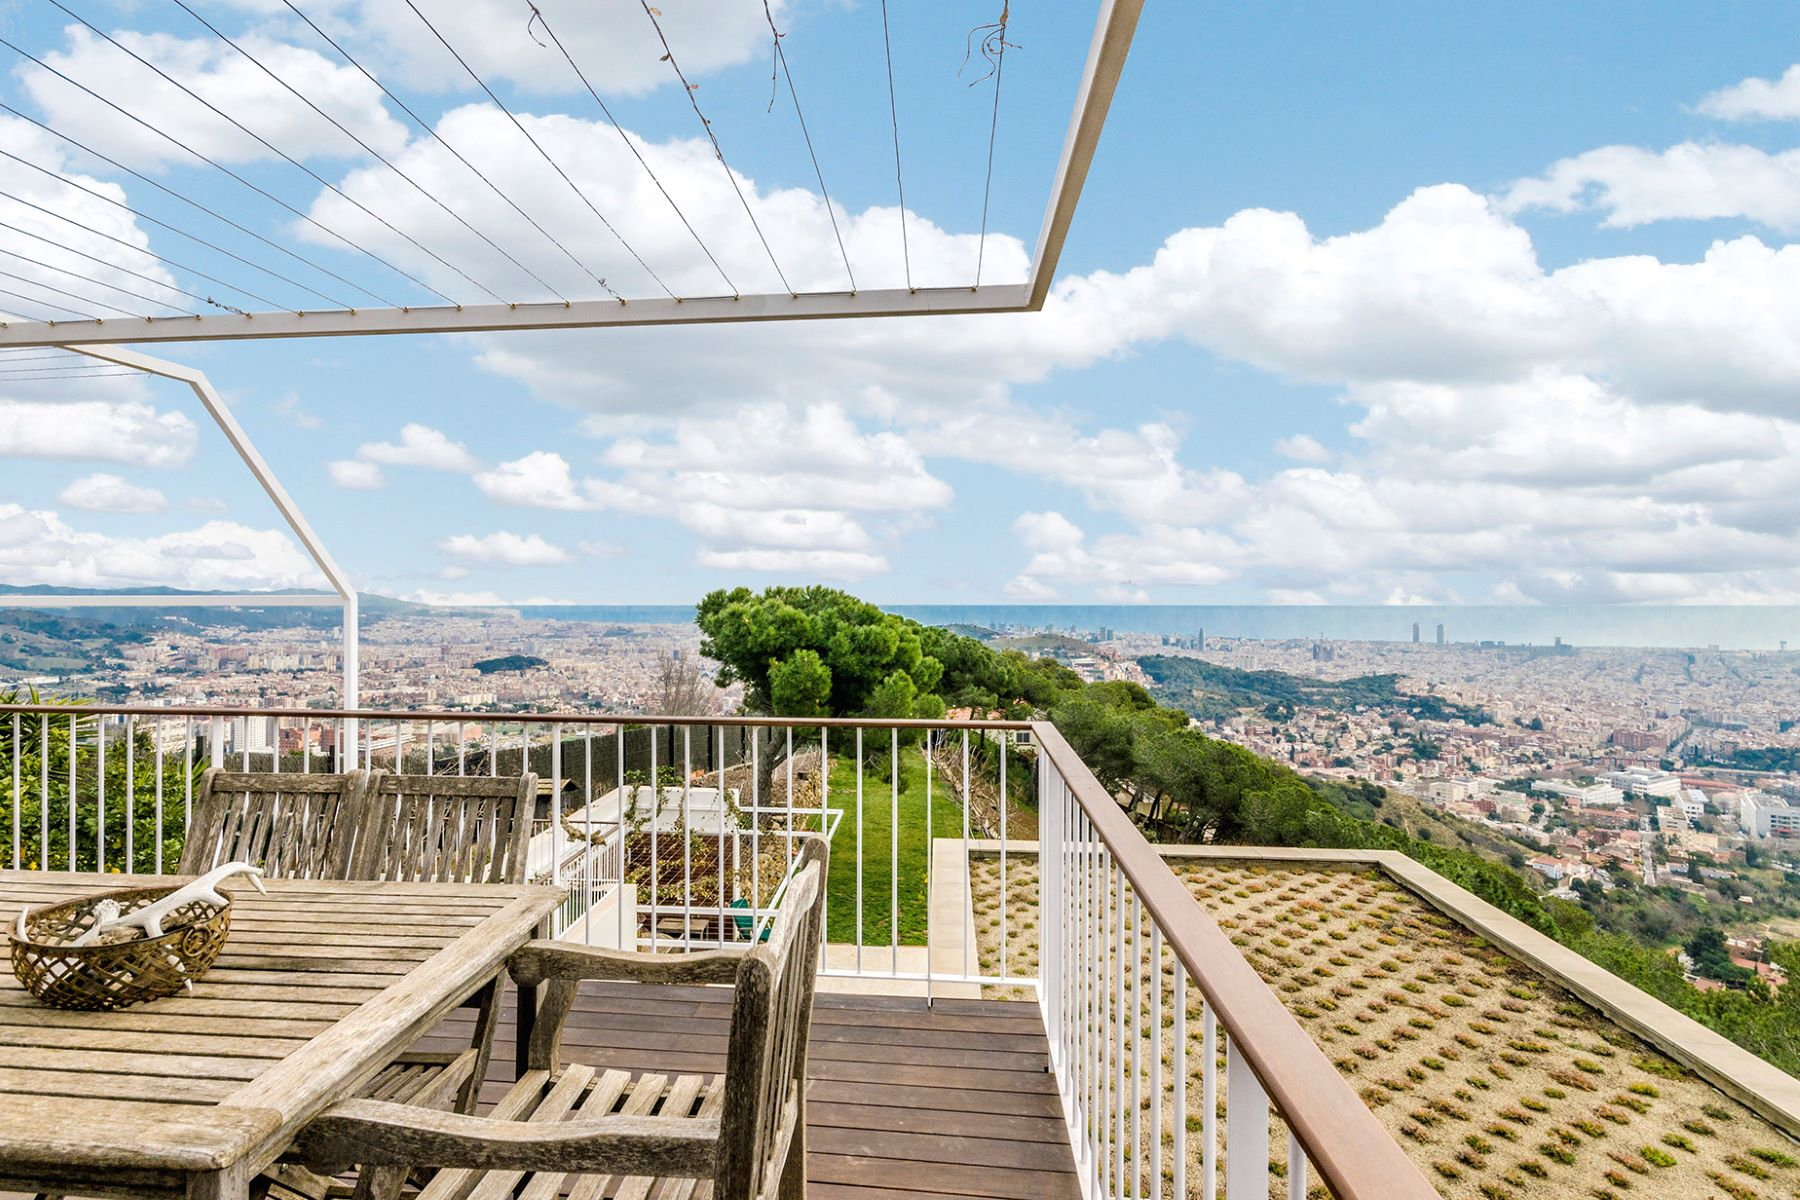 Single Family Home for Sale at Detached property located in Collserola with panoramic views of Barcelona Barcelona City, Barcelona, 08034 Spain